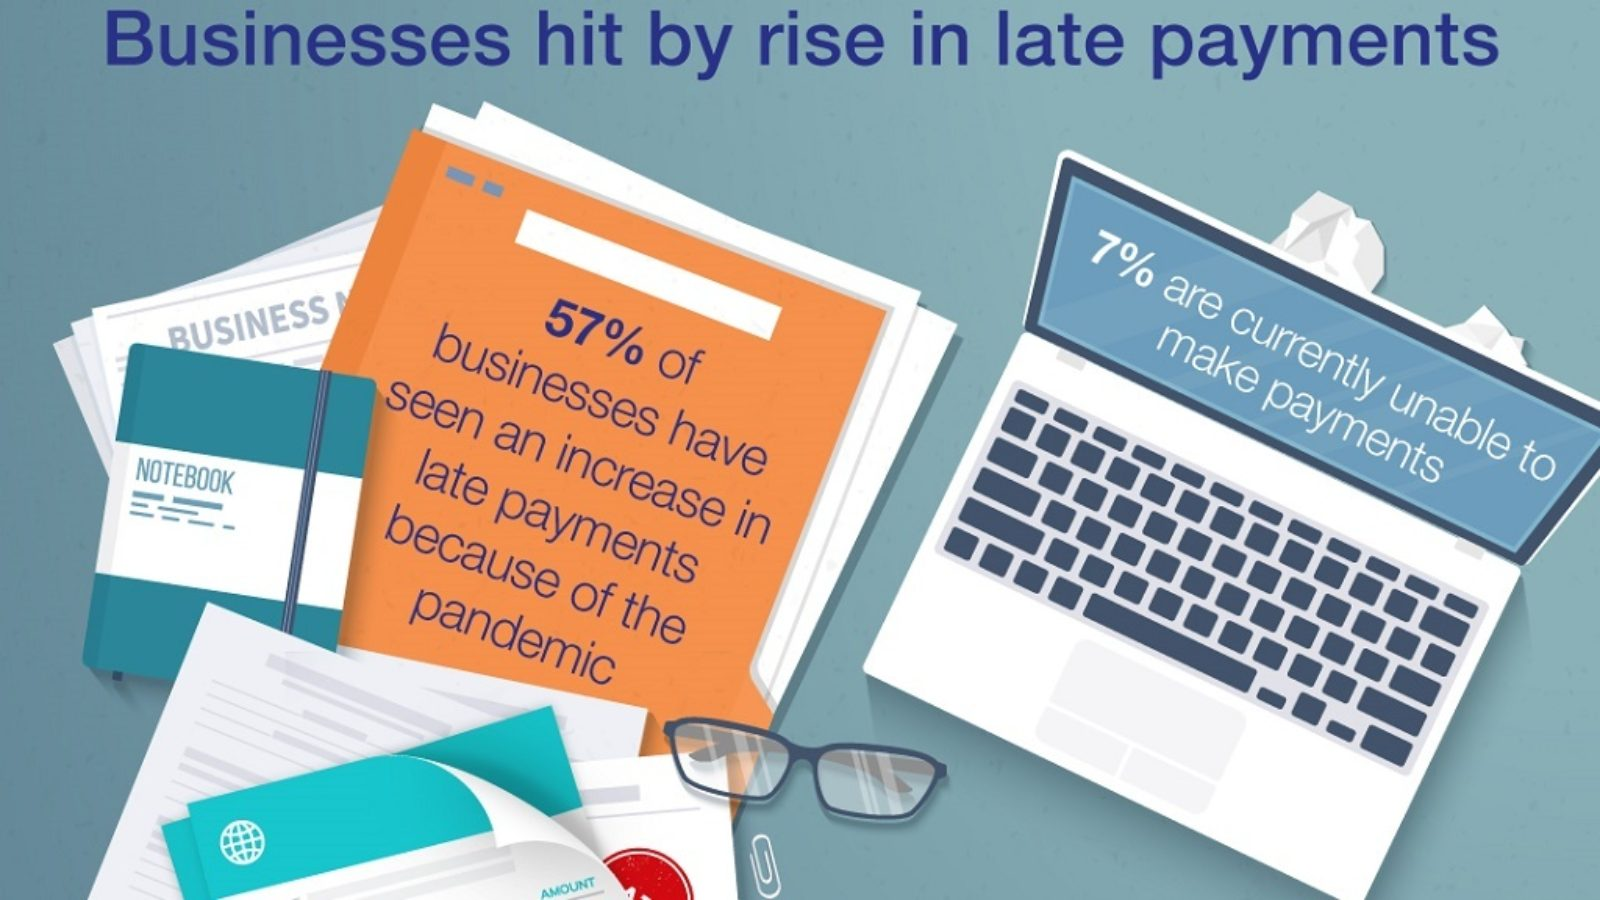 Businesses hit by rise in late payments